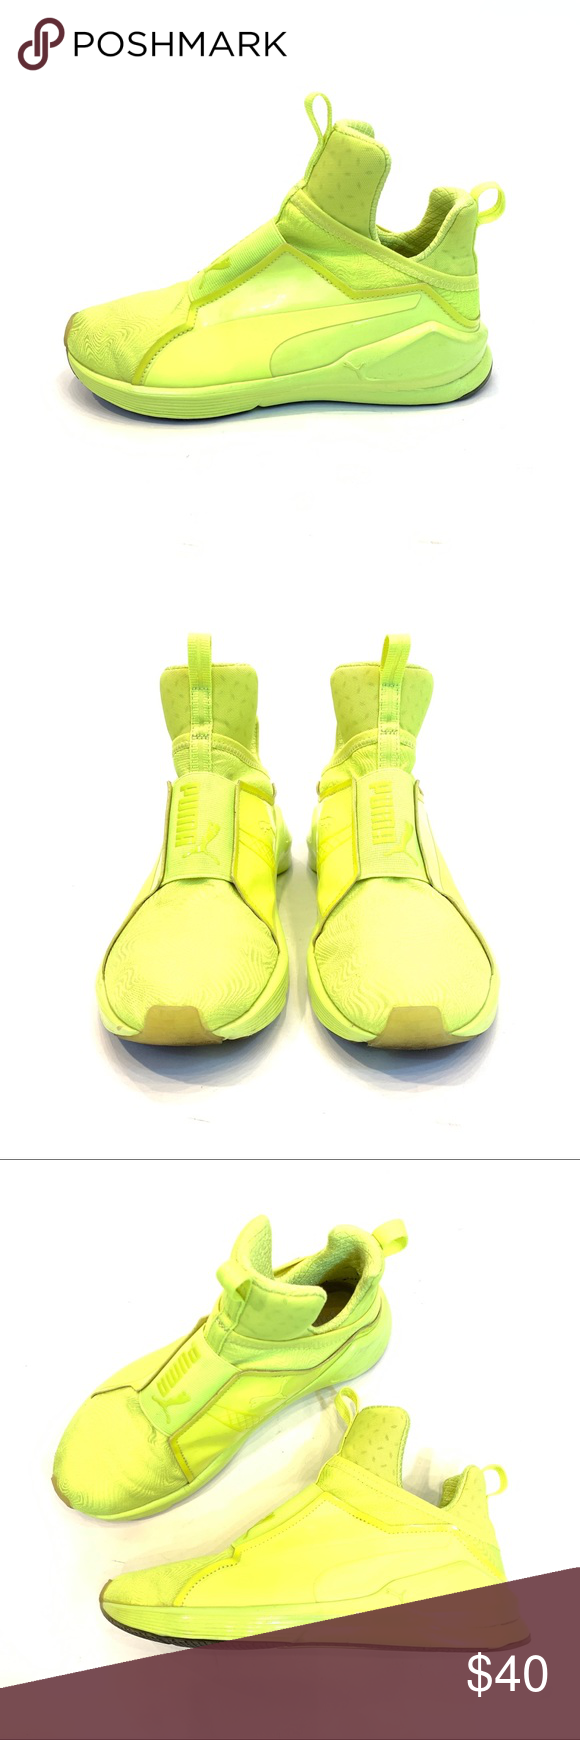 innovative design 2b7bf e66c9 Puma Fierce Bright in Neon Yellow, Sz 7.5. As seen on Rihanna and Kylie  Jenner. Super comfy and attention grabbing. Puma Shoes Sneakers